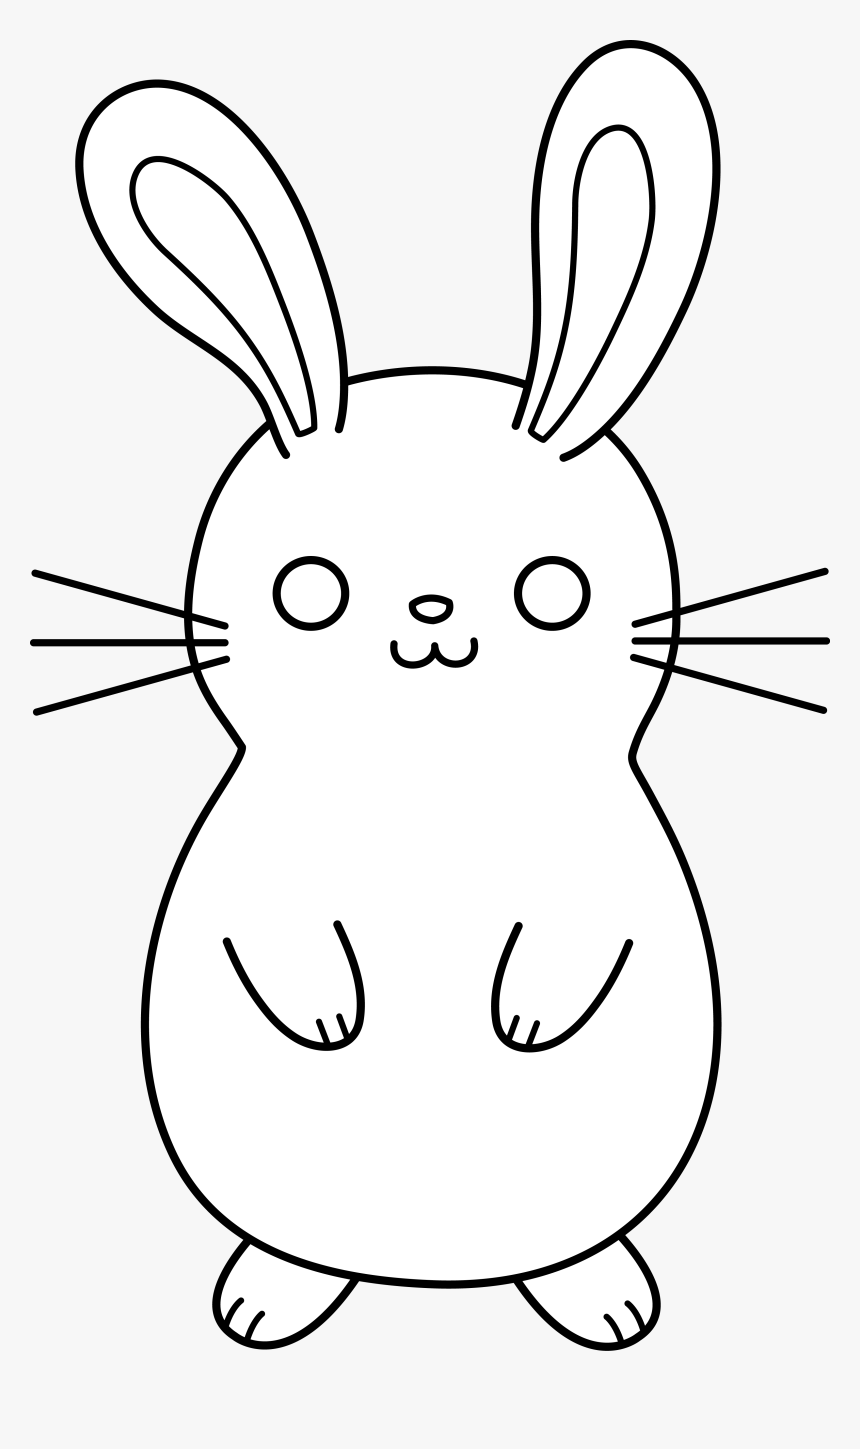 picture of easter bunny happy easter coloring pages printable for kids and adults of picture bunny easter